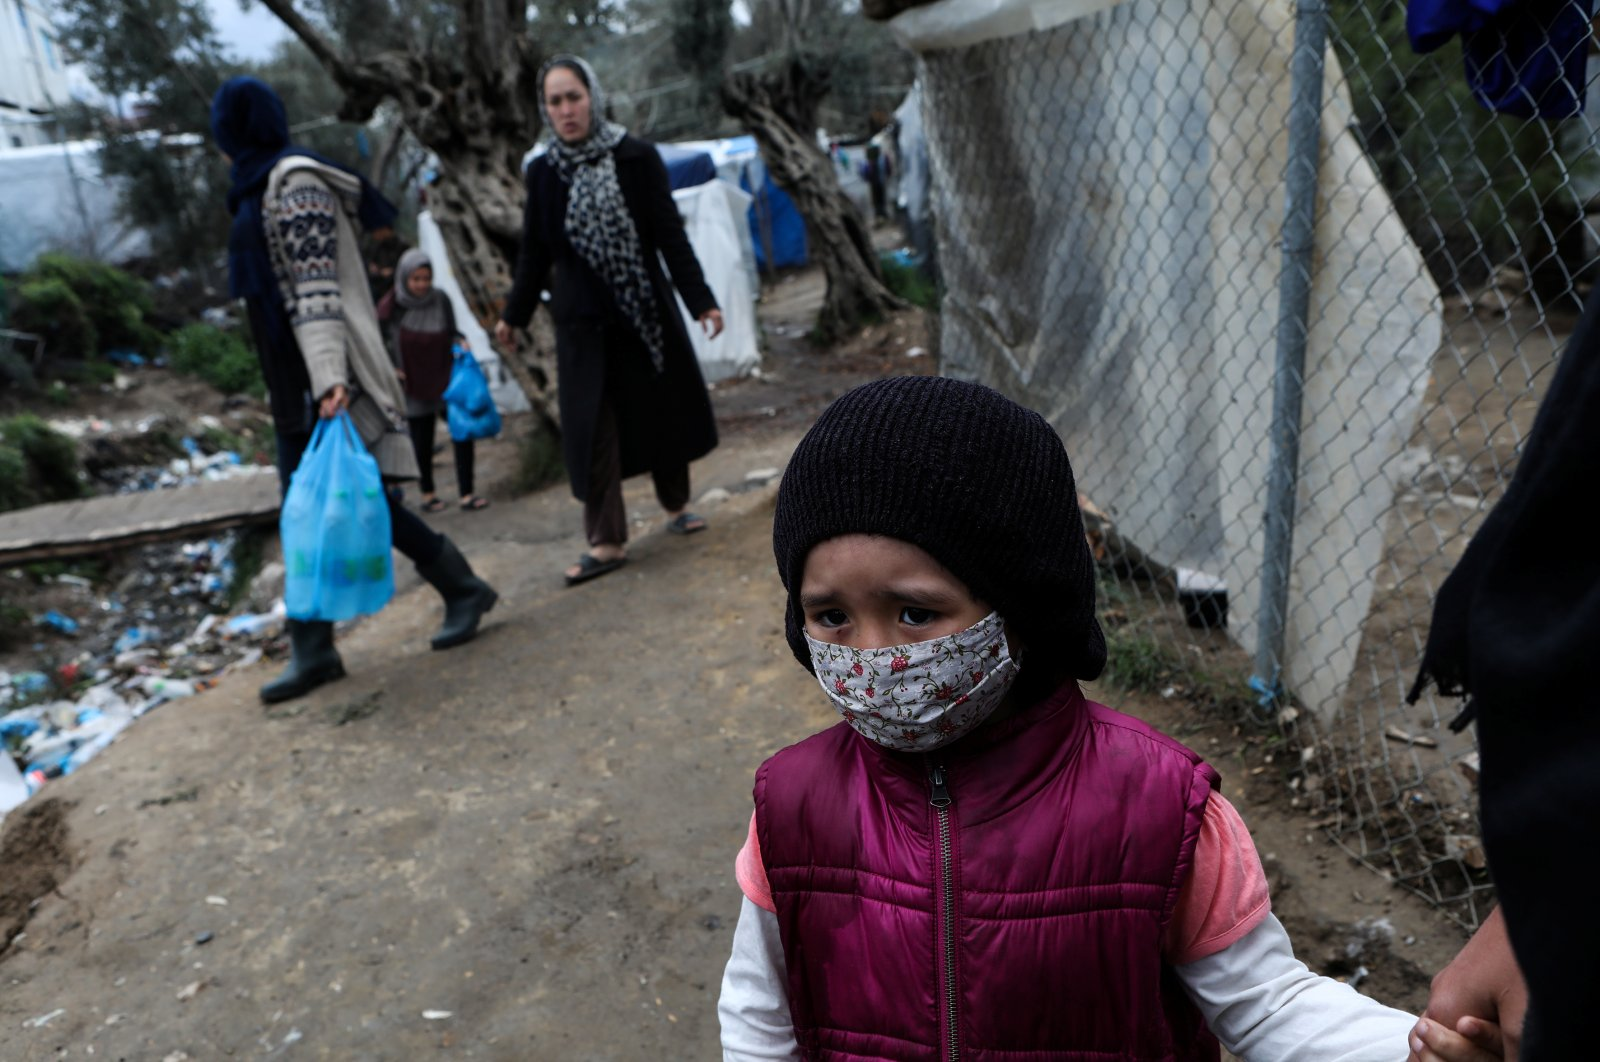 A girl wears a protective face mask at a makeshift camp for refugees and migrants in Lesbos, Greece, Thursday, April 2, 2020. (Reuters Photo)